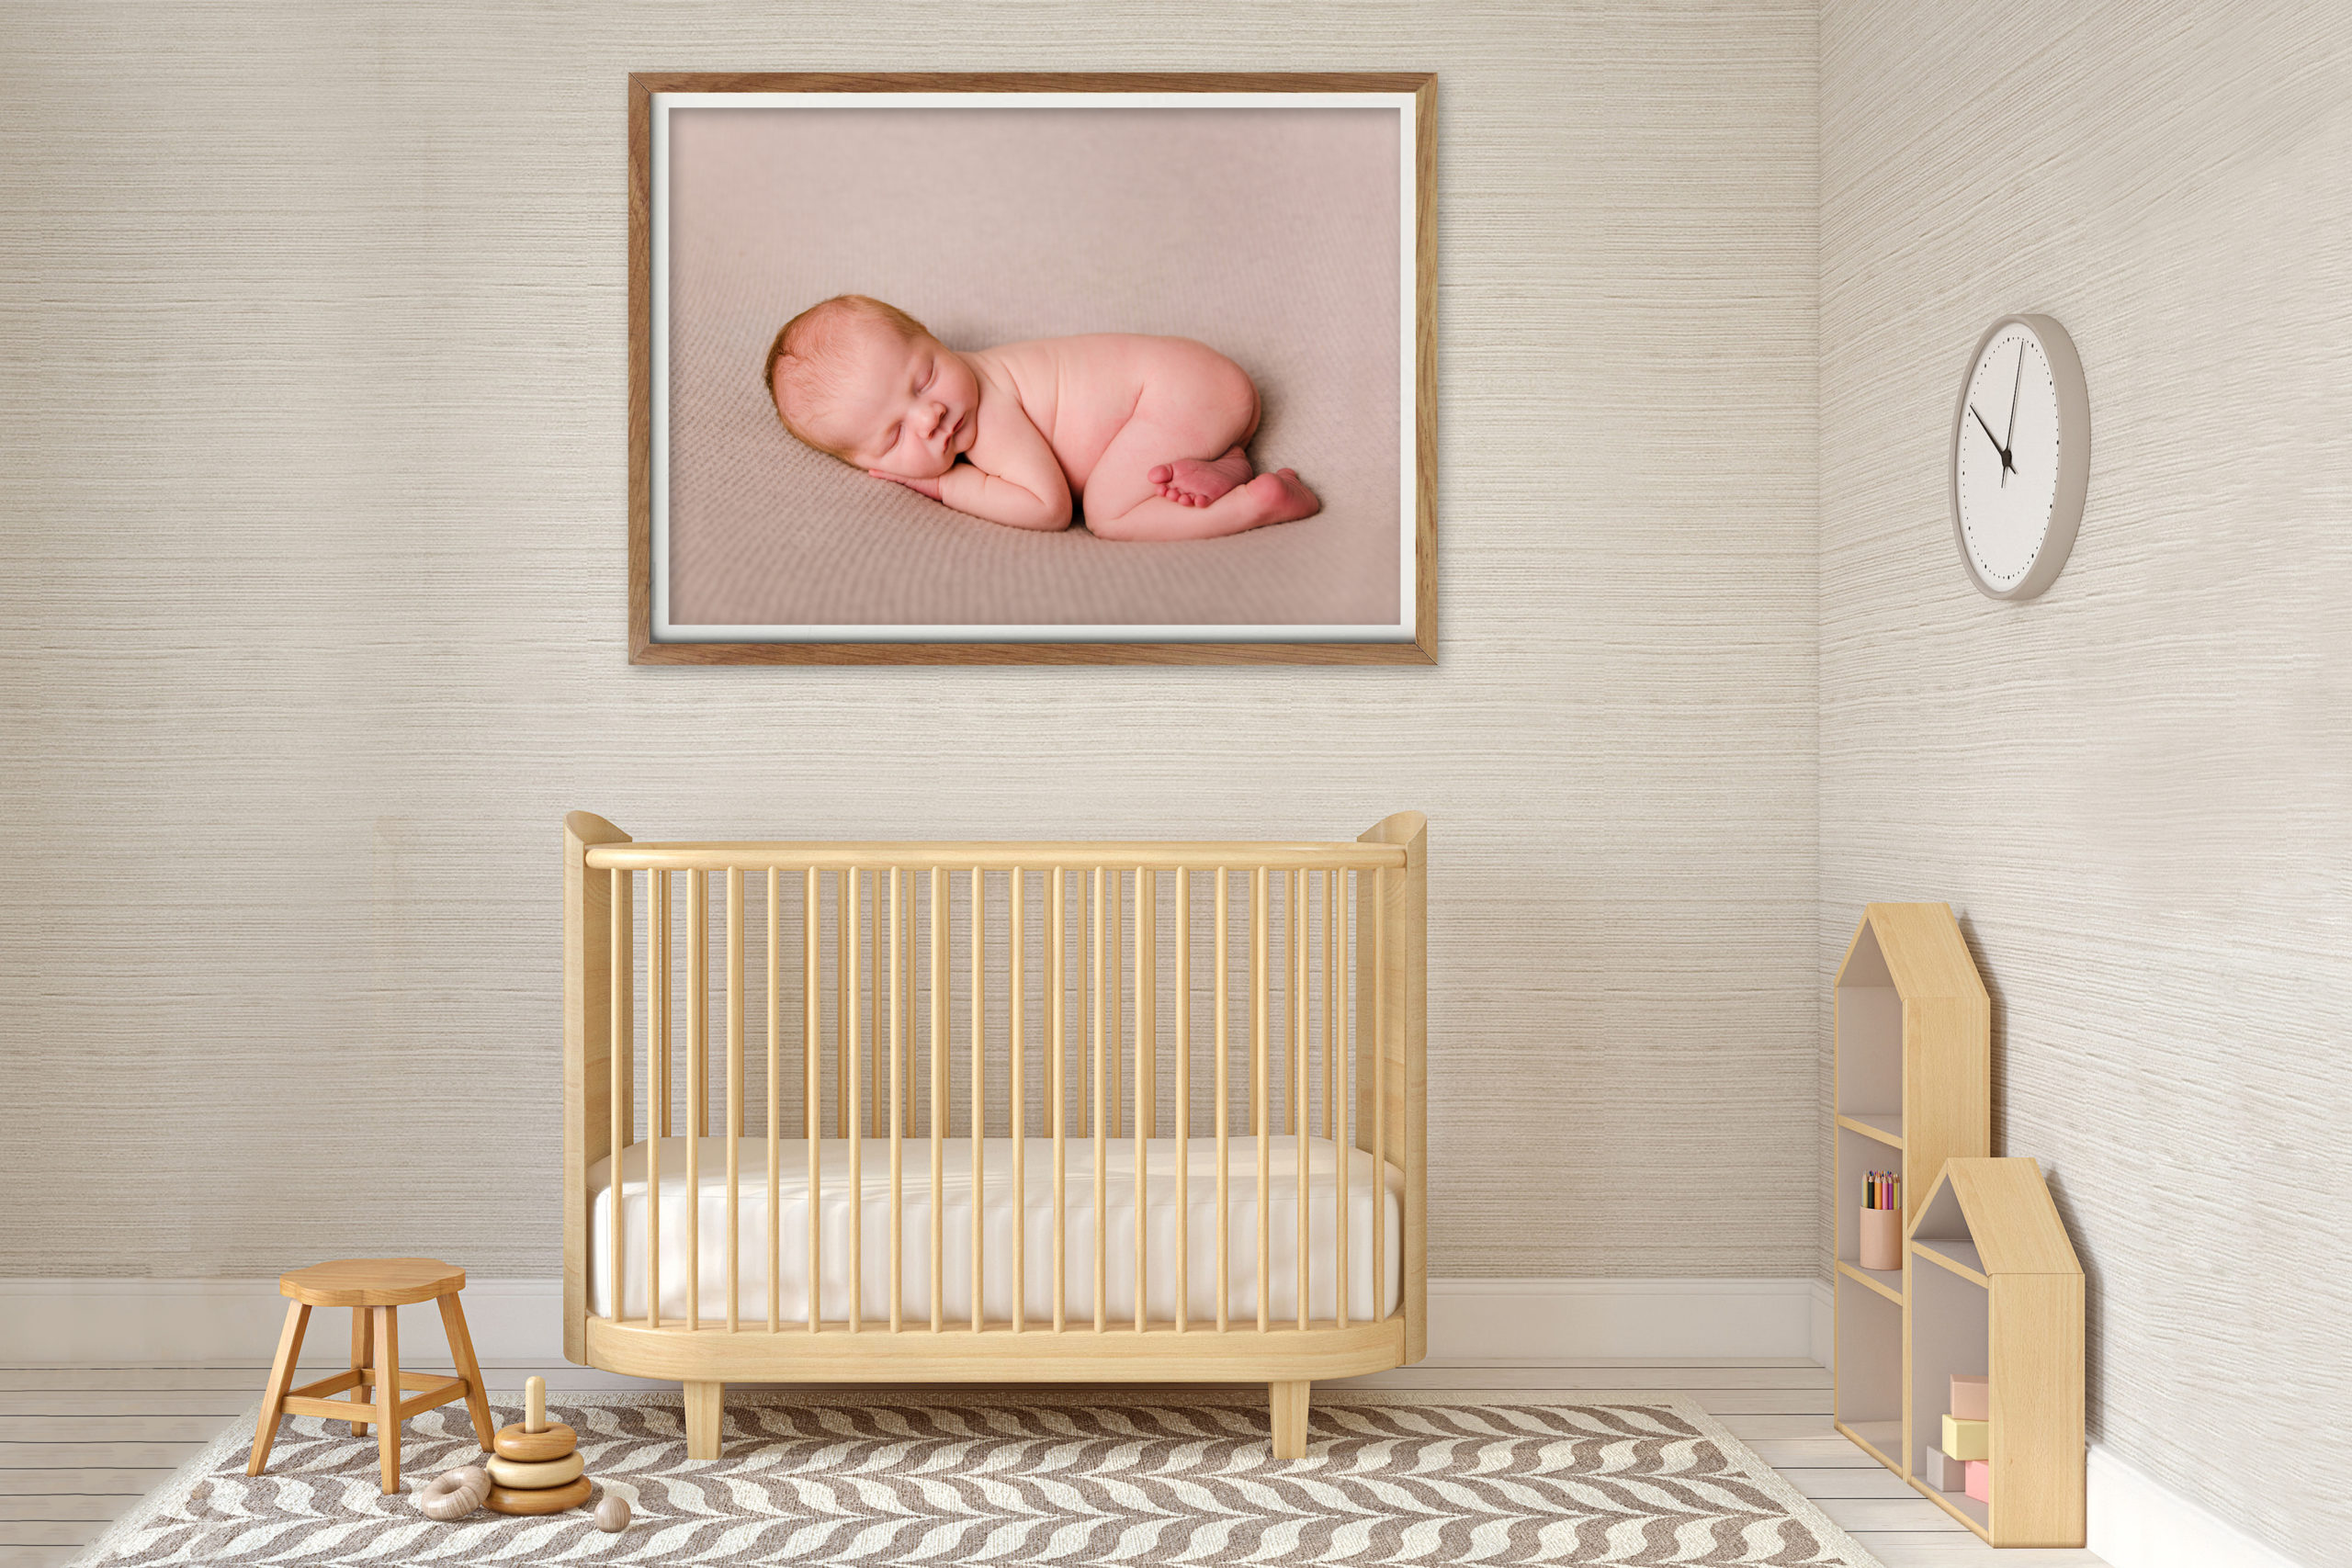 Newborn and Family photography canvas and art photography products in interior three photos on a wall art octagon canvases in a bedroom South West London Wimbledon Photographer SW19 Photography printing products luxury canvases, photo art wall art canvas professional canvas framed art work